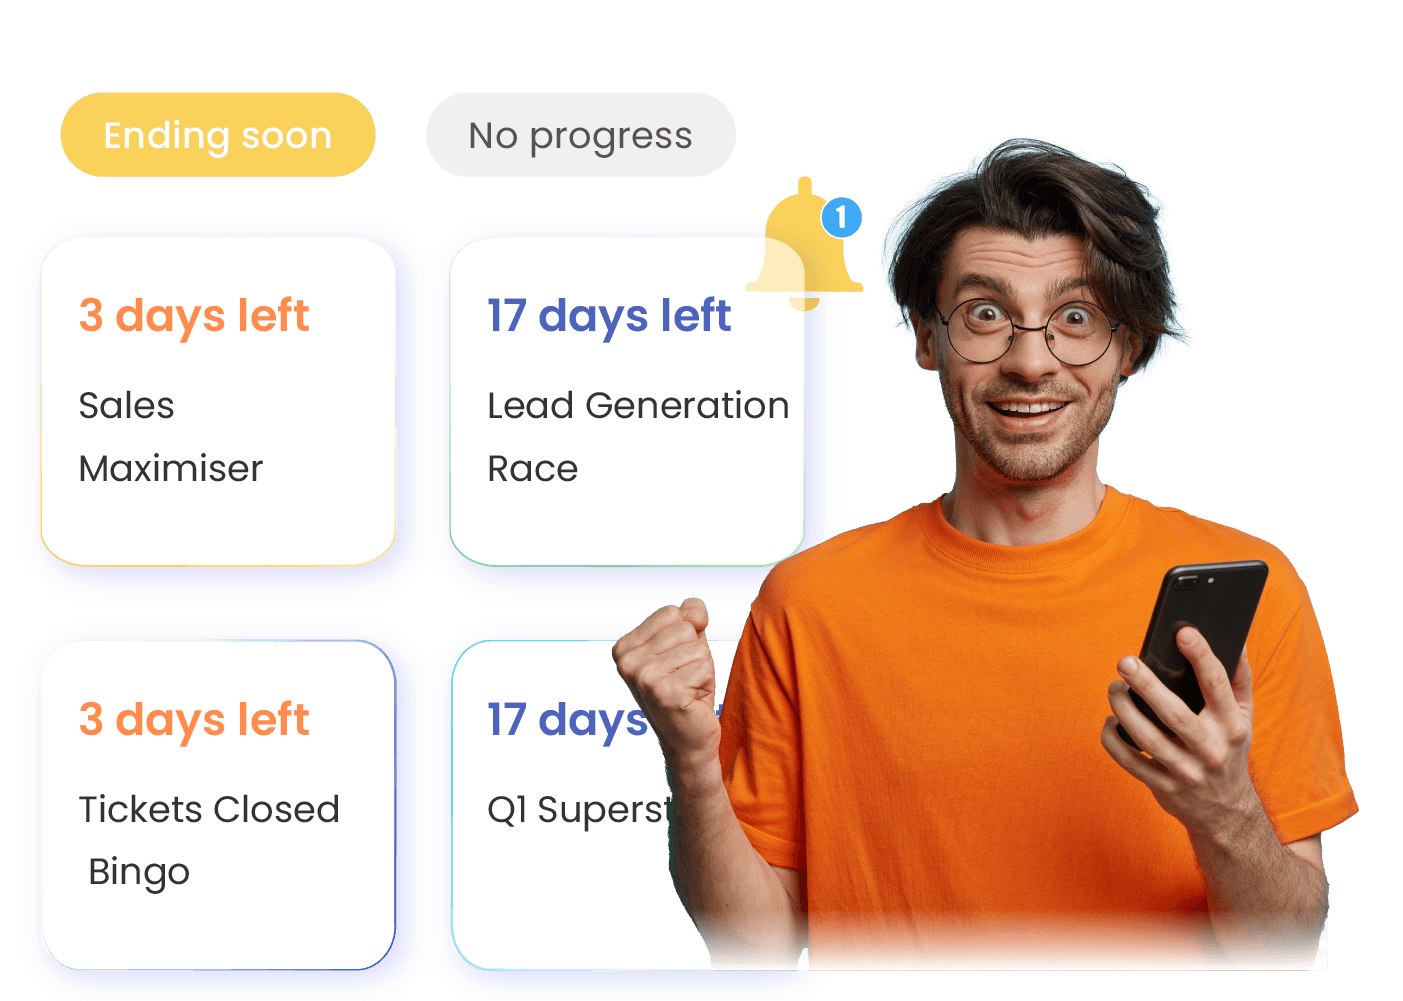 Xoxoday Compass Software - Nudge-based Coaching - Nudge engine that breaks down performance targets into rightly timed interventions to boost achievements.